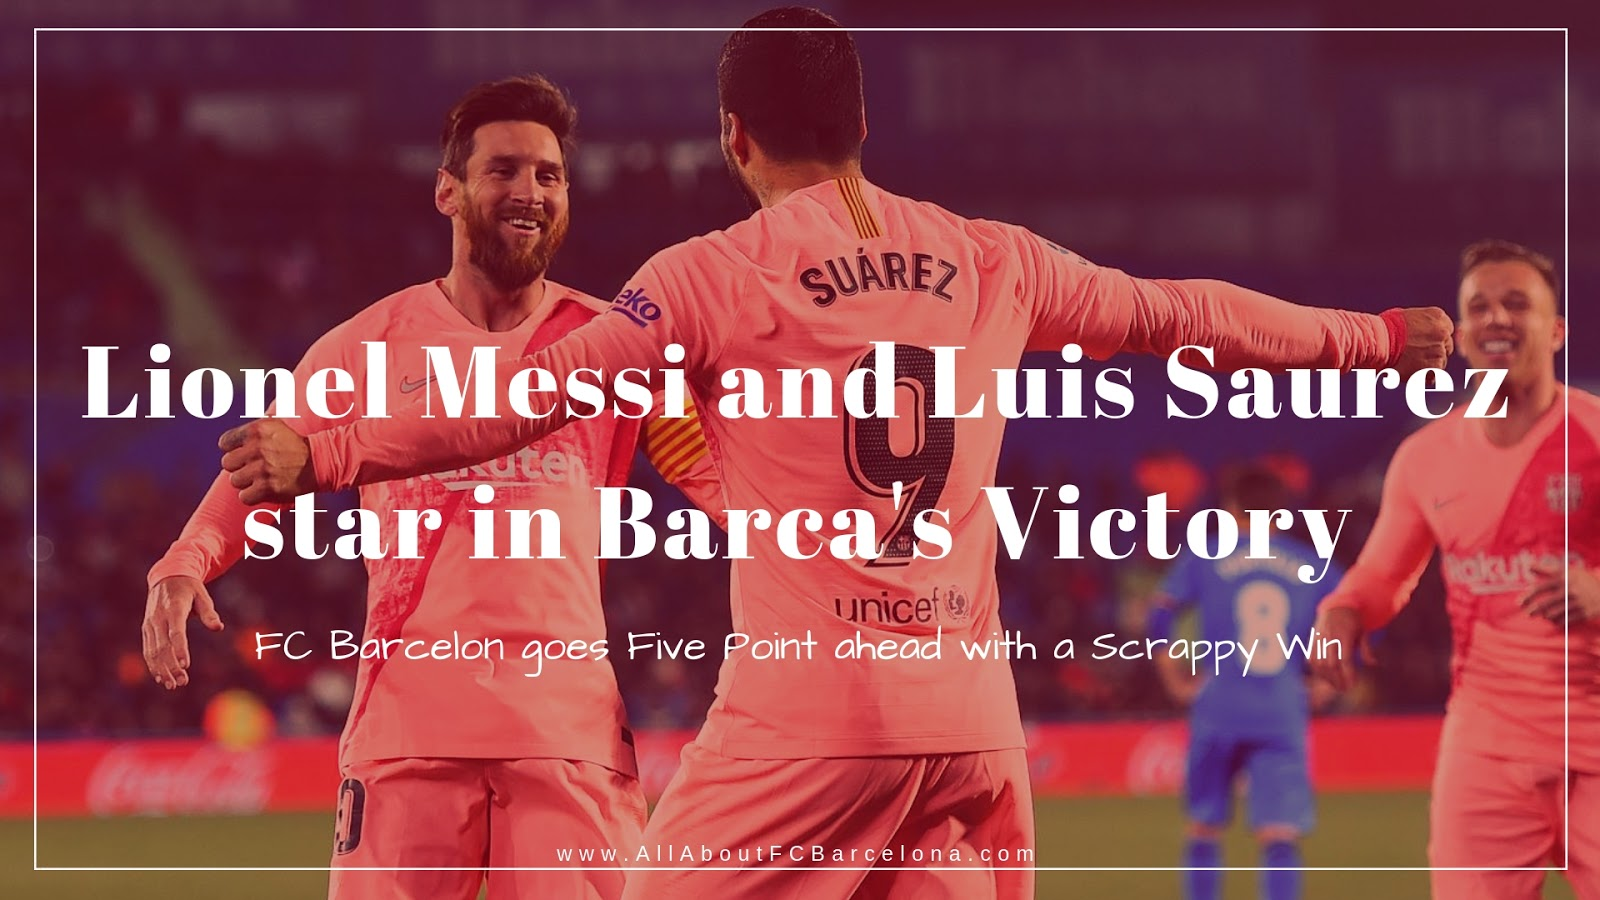 FC Barcelona Starts Year 2019 with a Competitive Victory over Getafe #Barca #FCBarcelona #Messi #Saurez